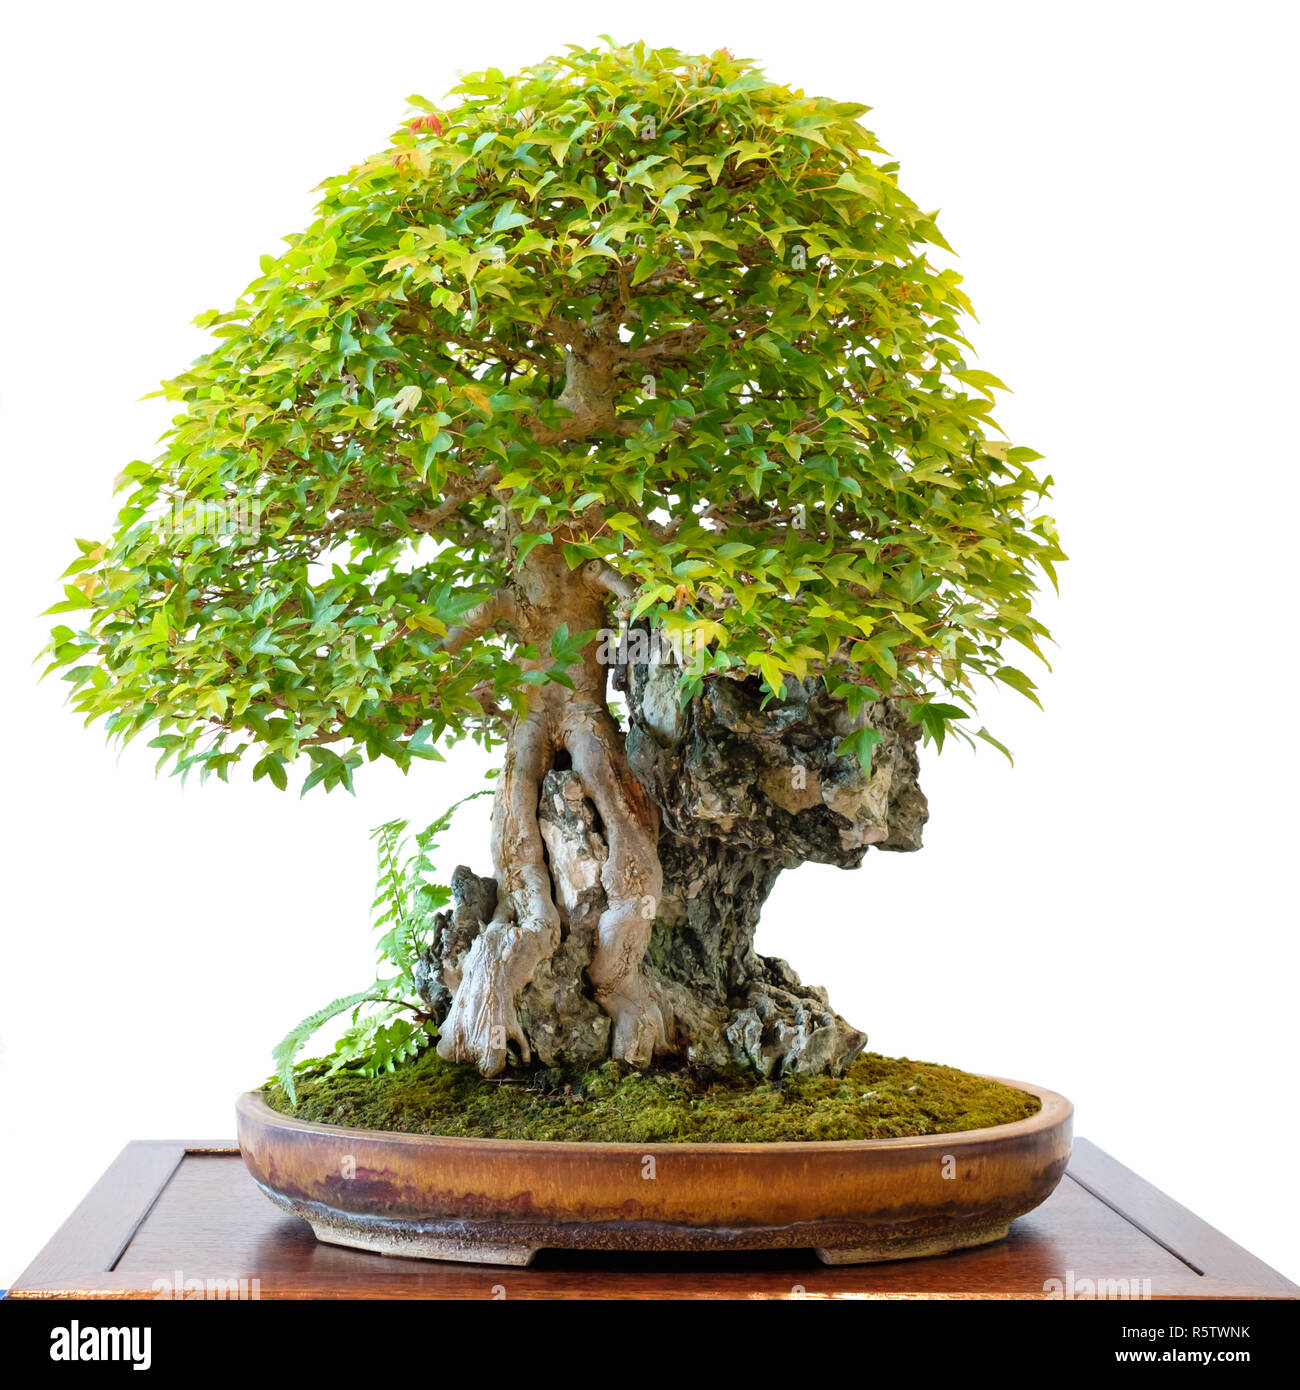 Trident Maple Acer Buergerianum As A Bonsai Tree Over A Rock Stock